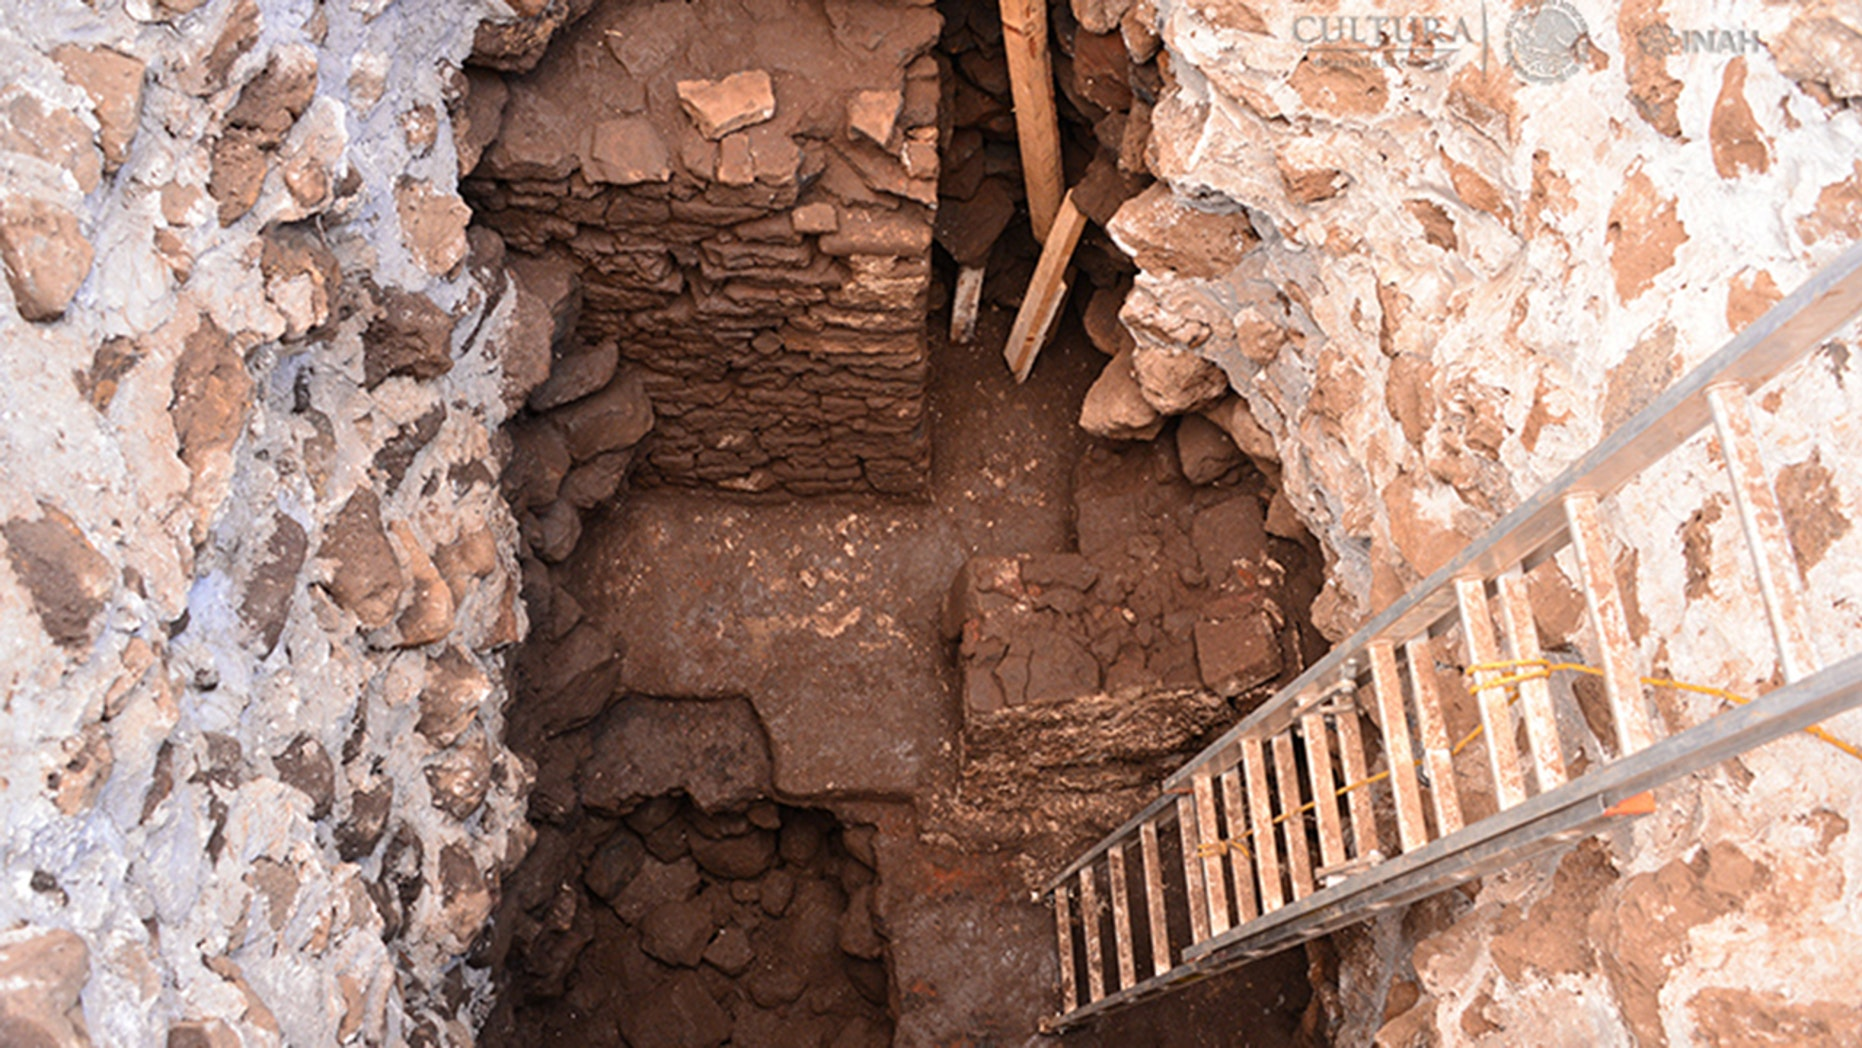 The temple was discovered when archaeologists were analyzing the damage in Teopanzolco pyramid.